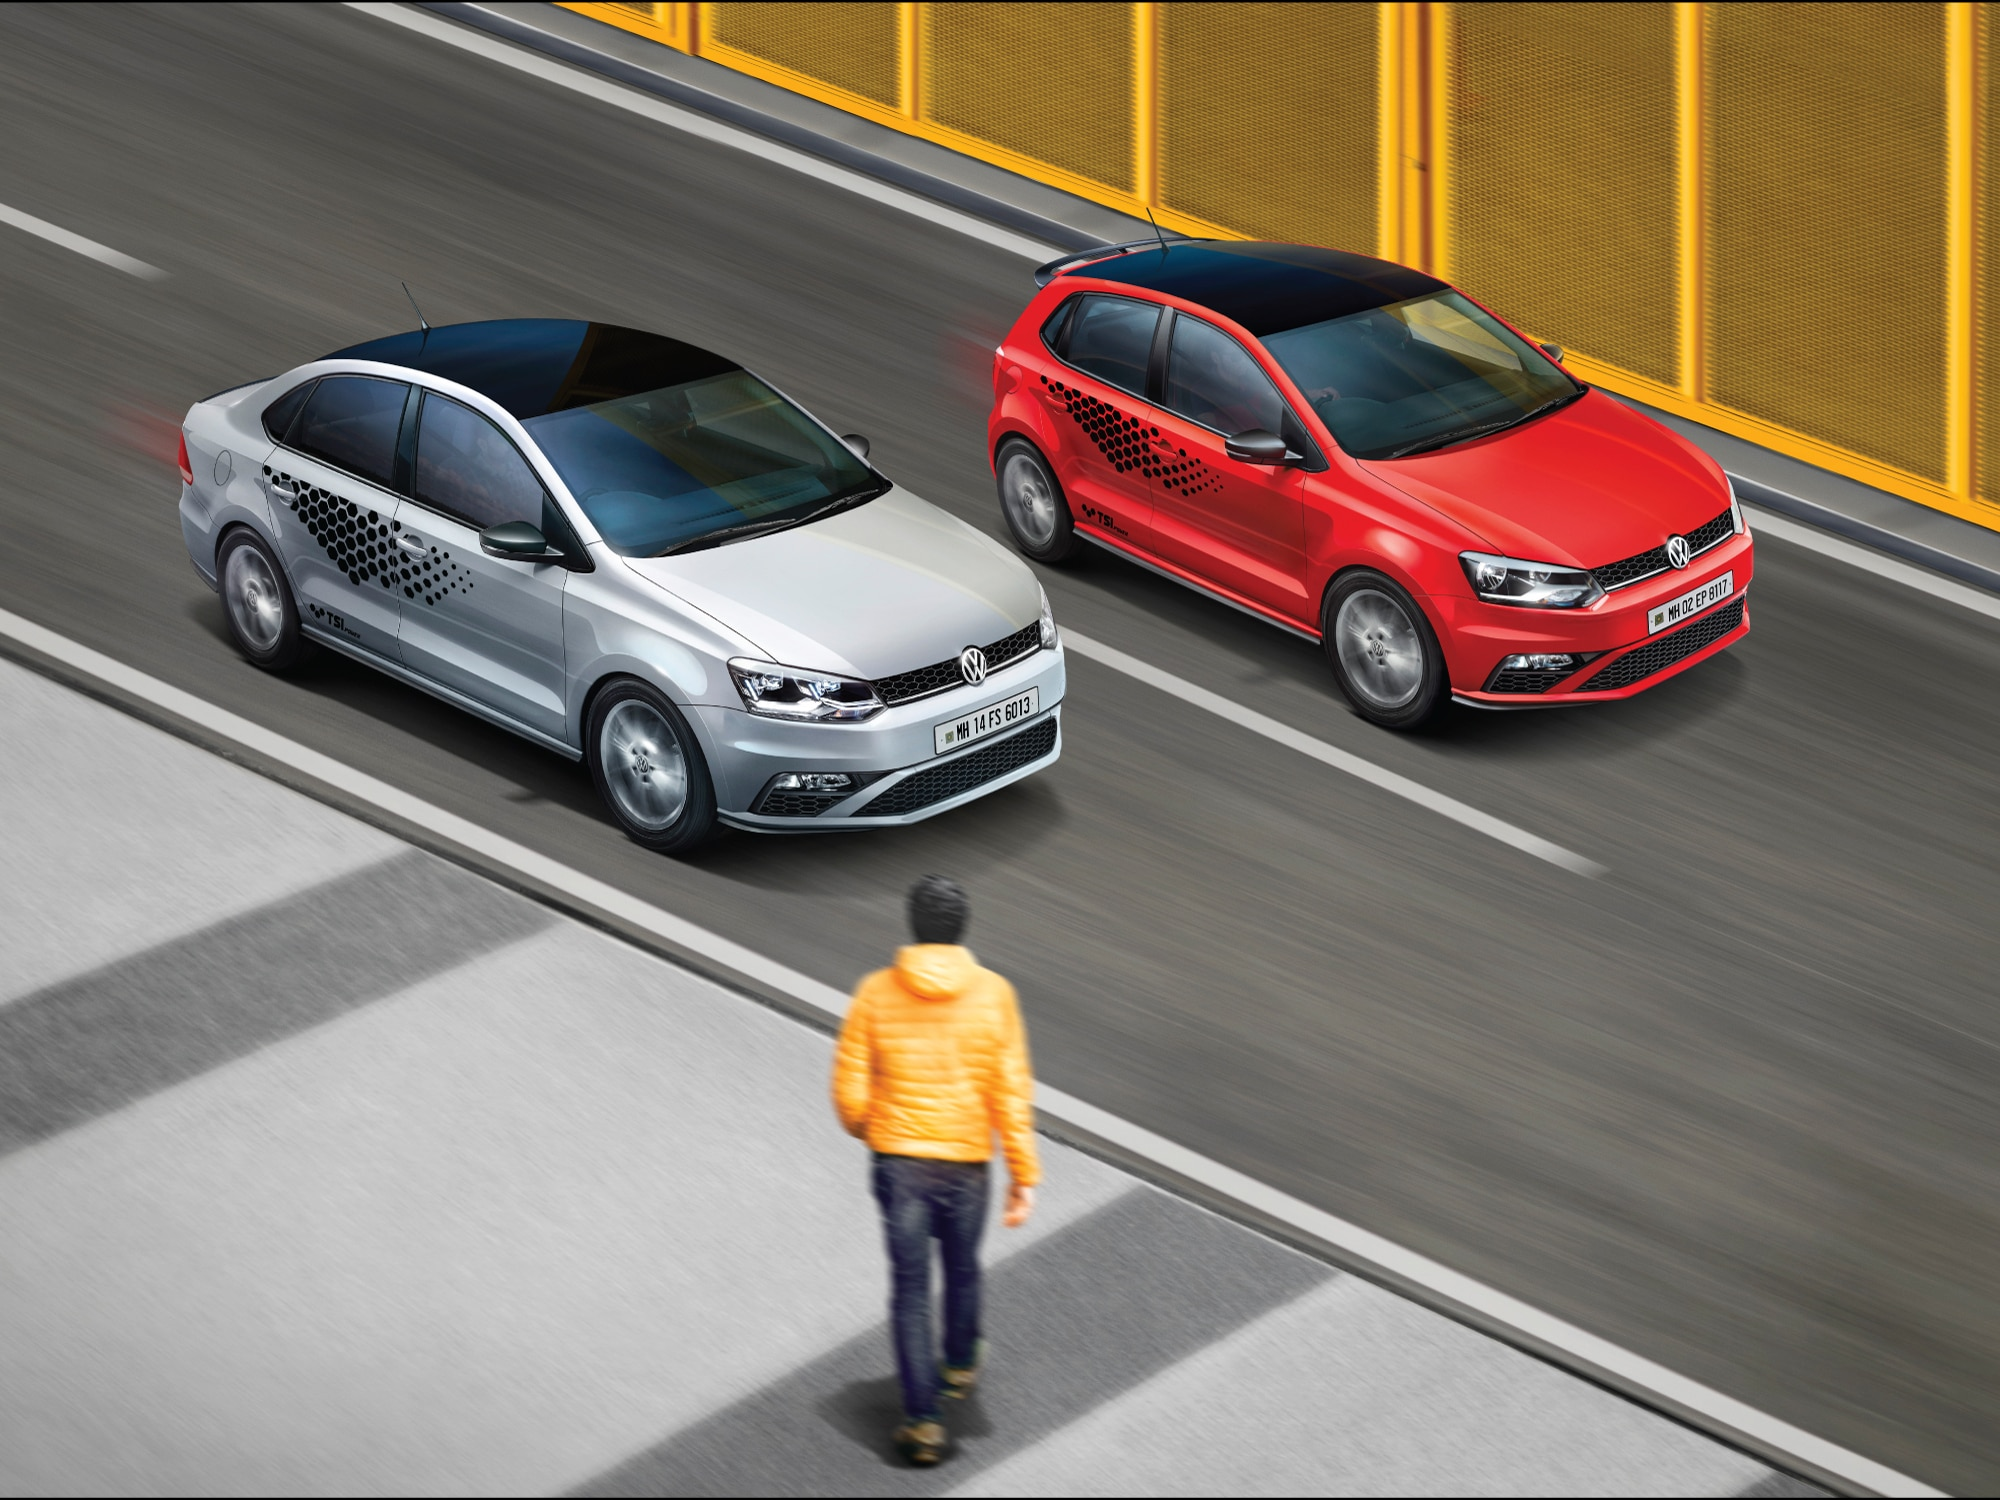 2020 volkswagen polo, vento tsi editions launched in india